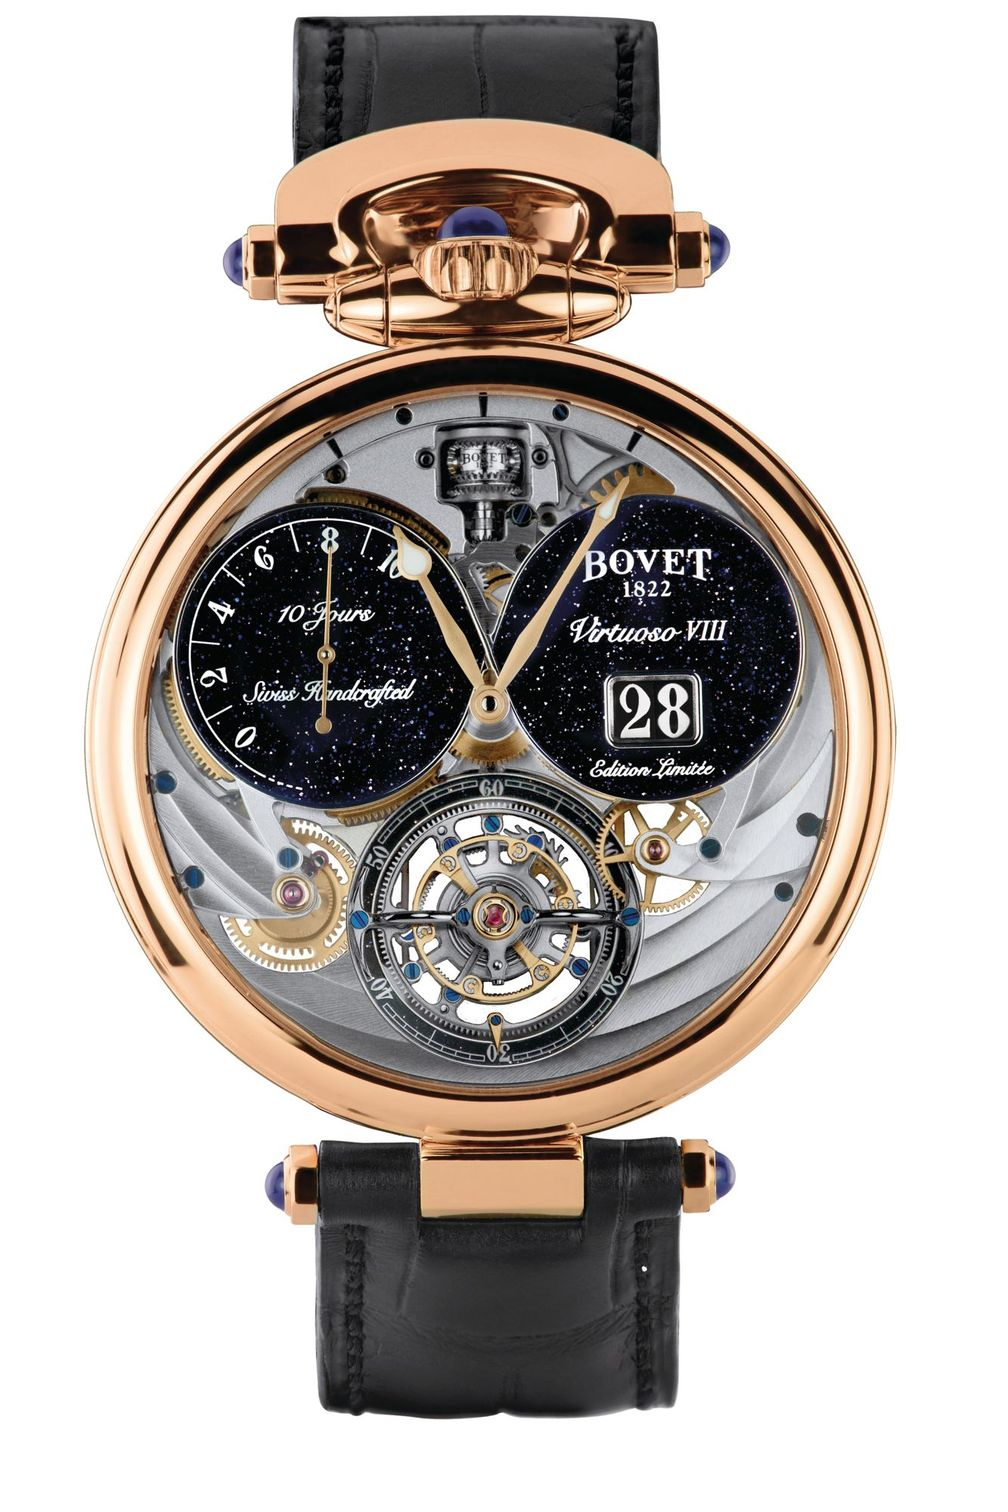 часы Virtuoso VIII Chapter Two от Bovet 1822